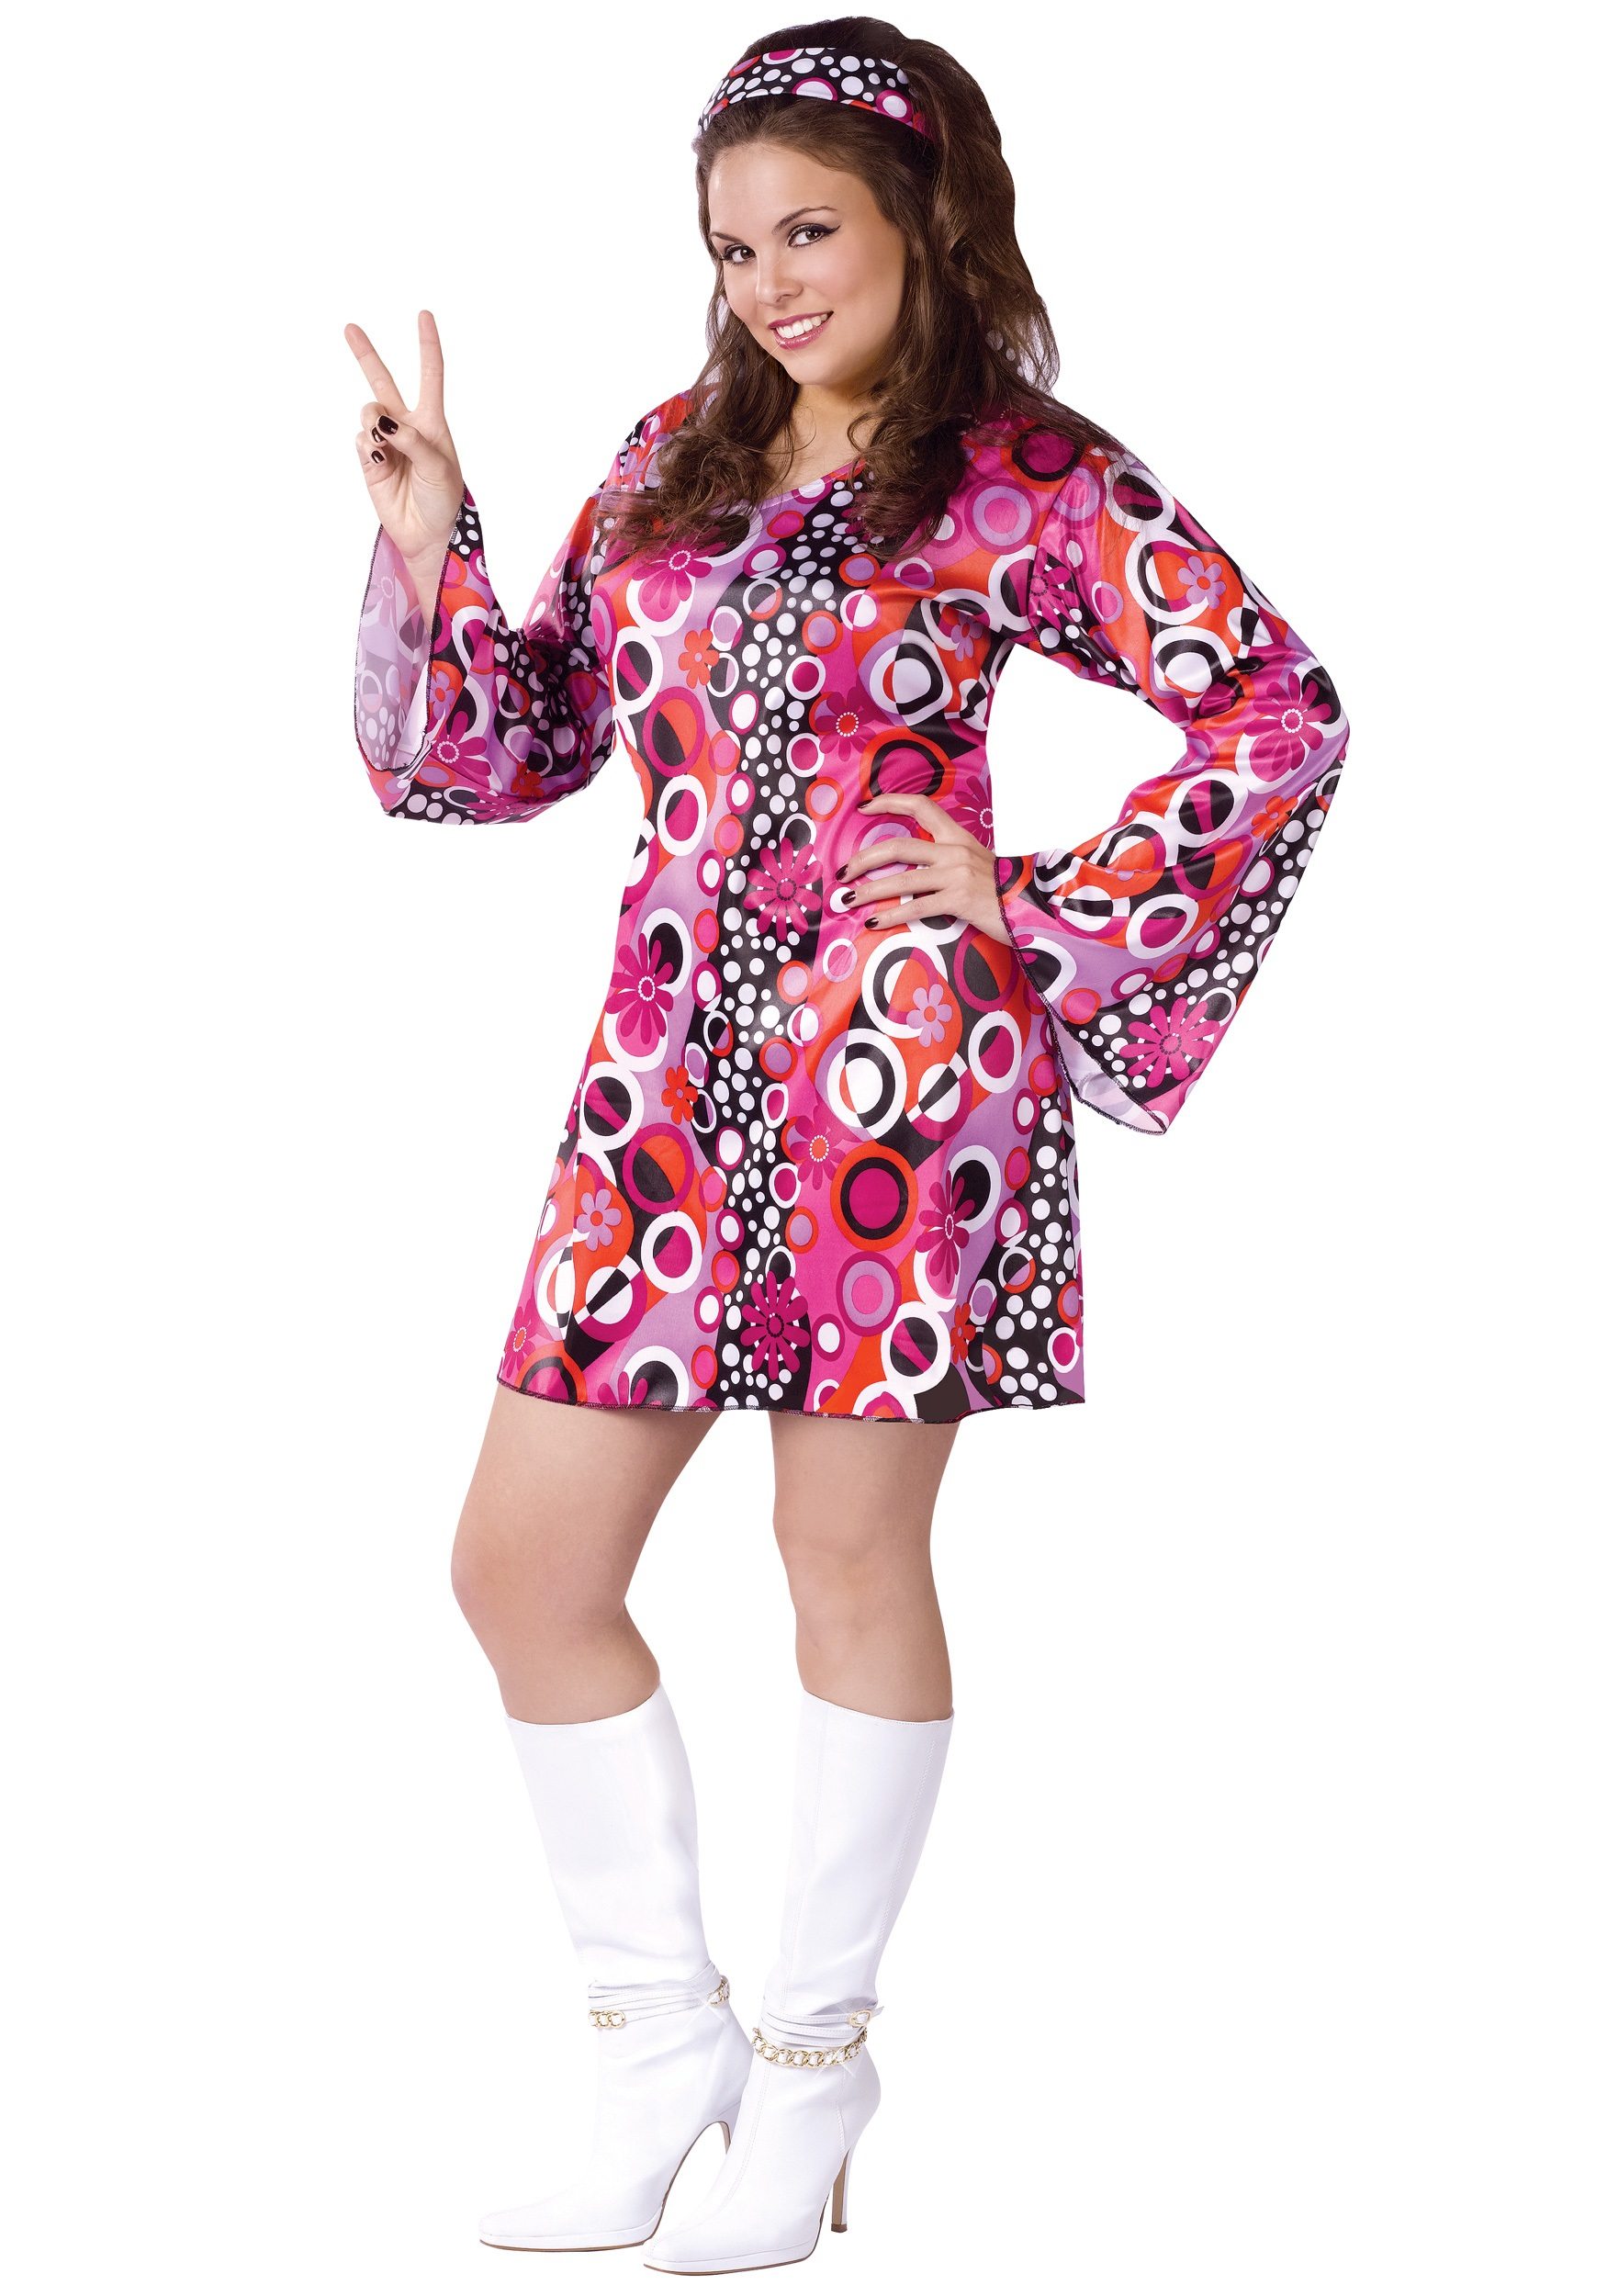 Plus Size Feelin\' Groovy Dress Costume